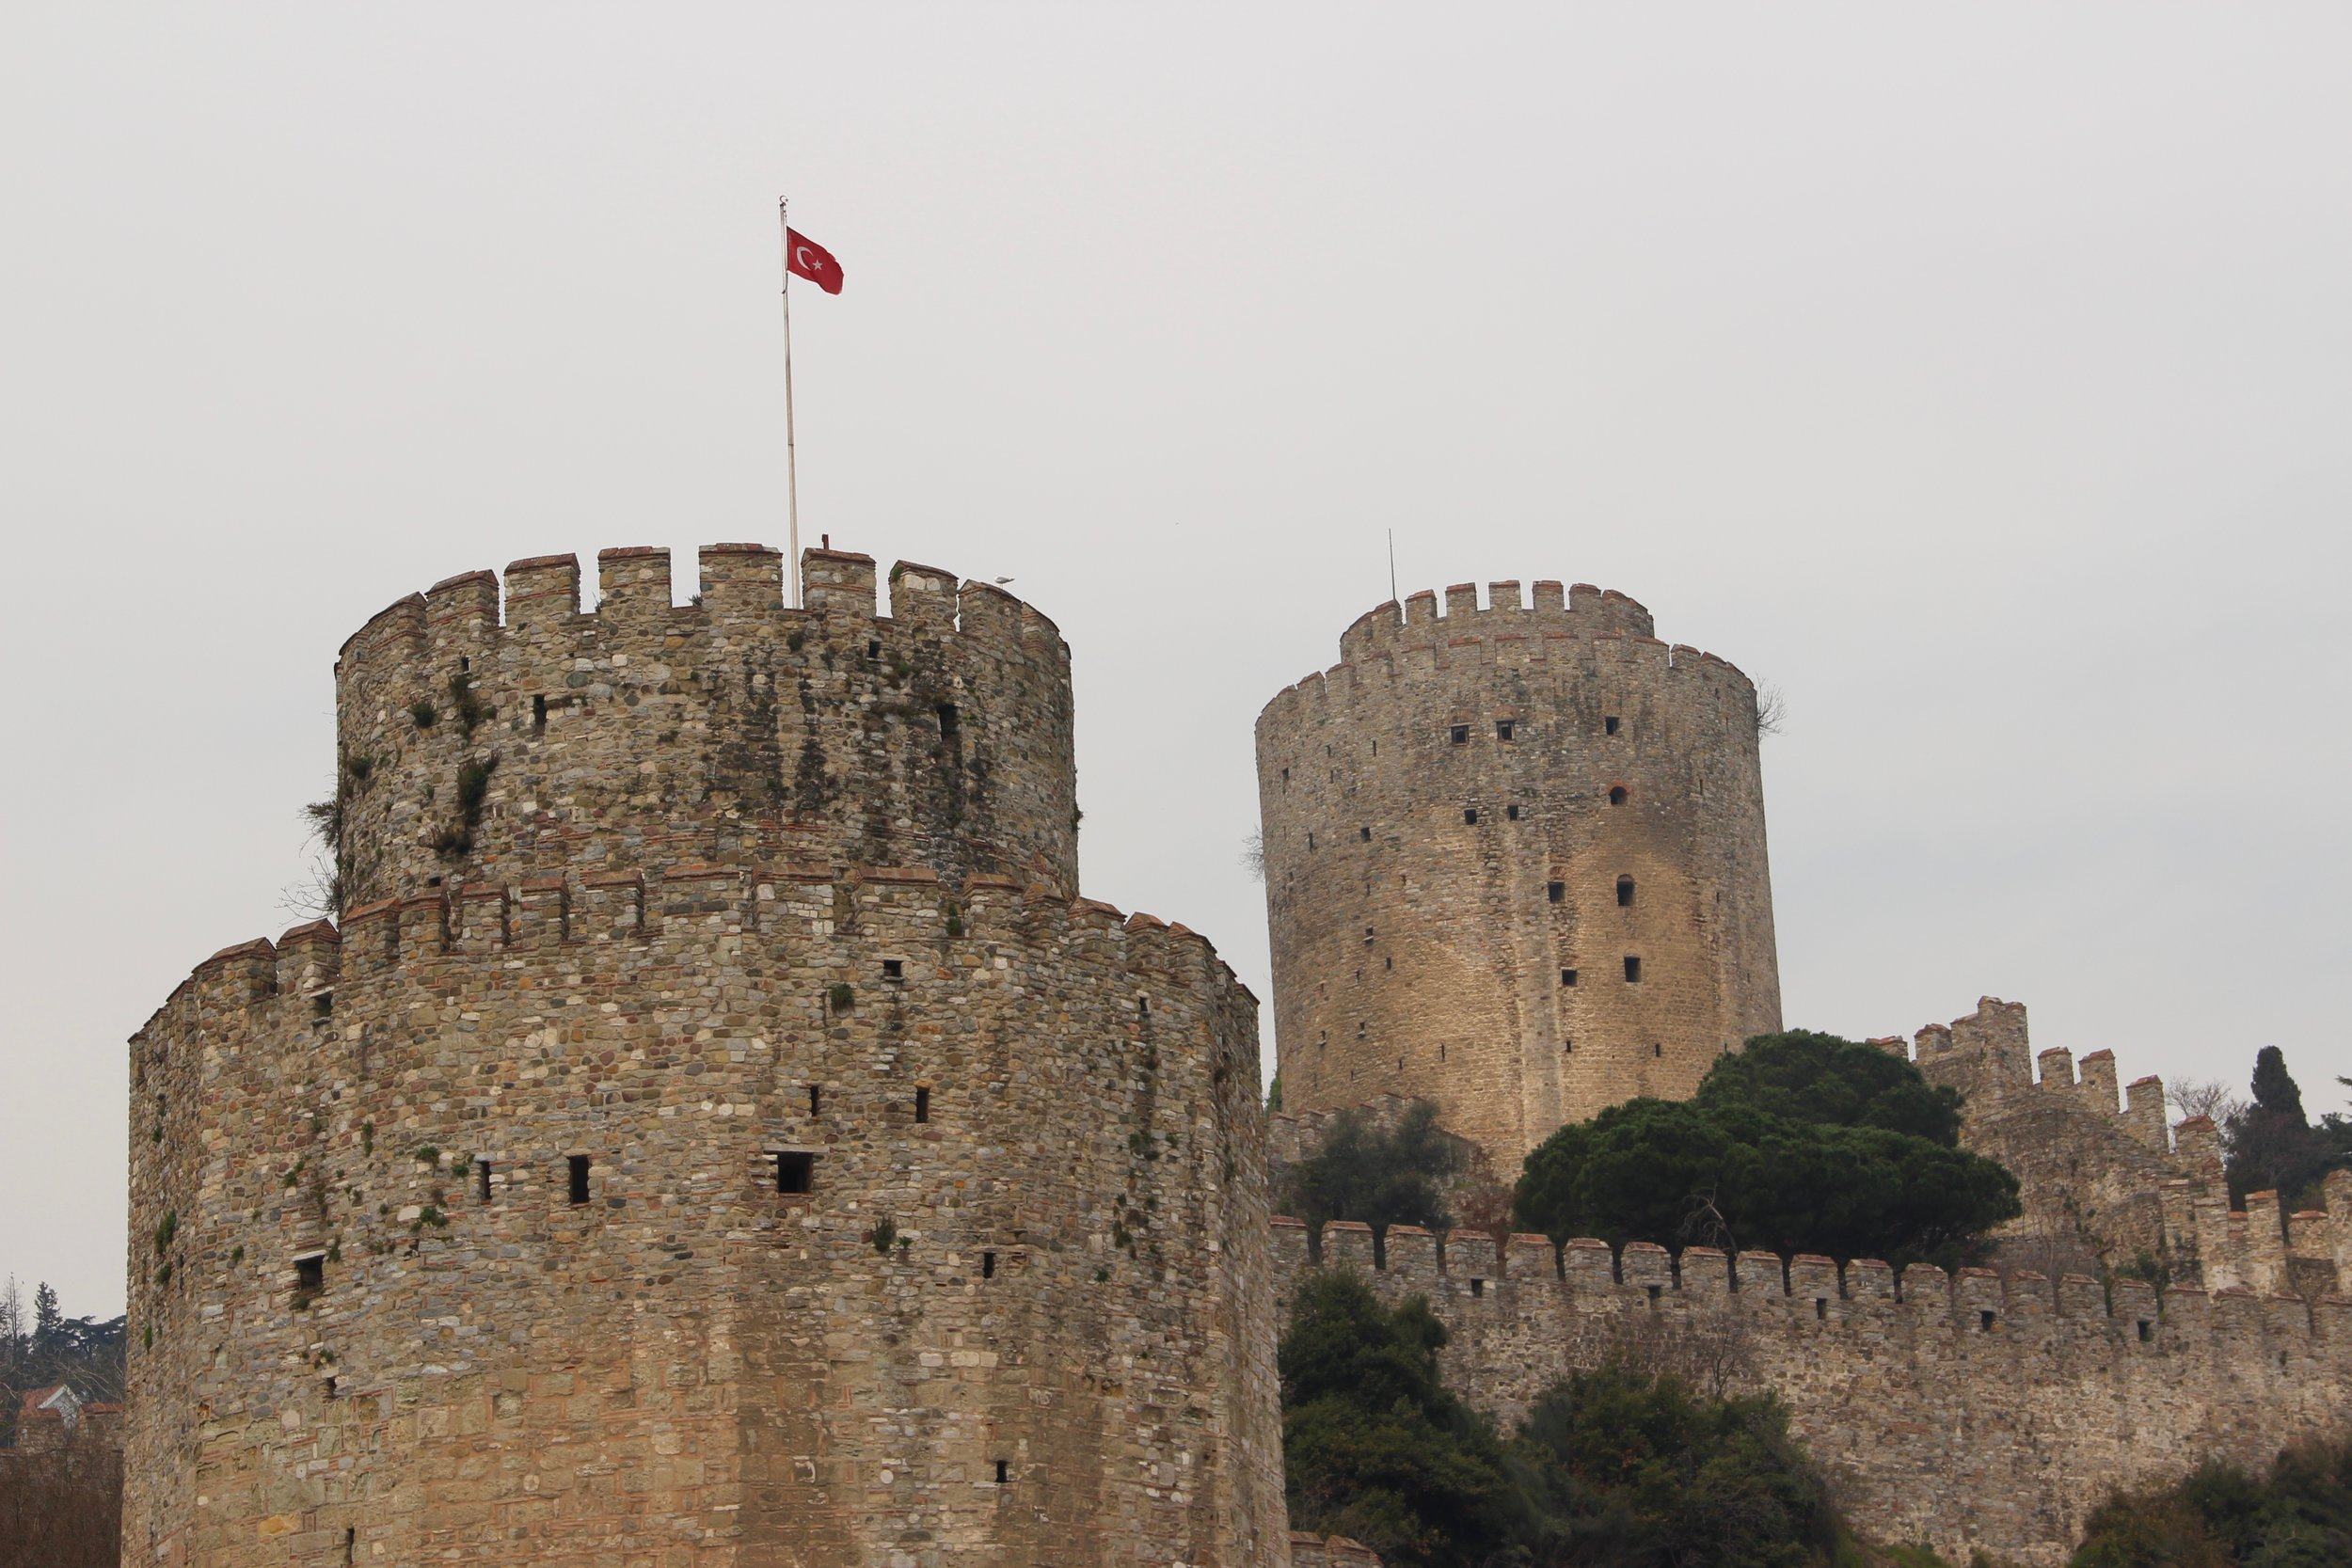 The Fort of Europe built by Mehmed the Conqueror in 4 months as part of his strategy to choke trade in the Bosphorus and take Constantinople. He was only 21 years old!